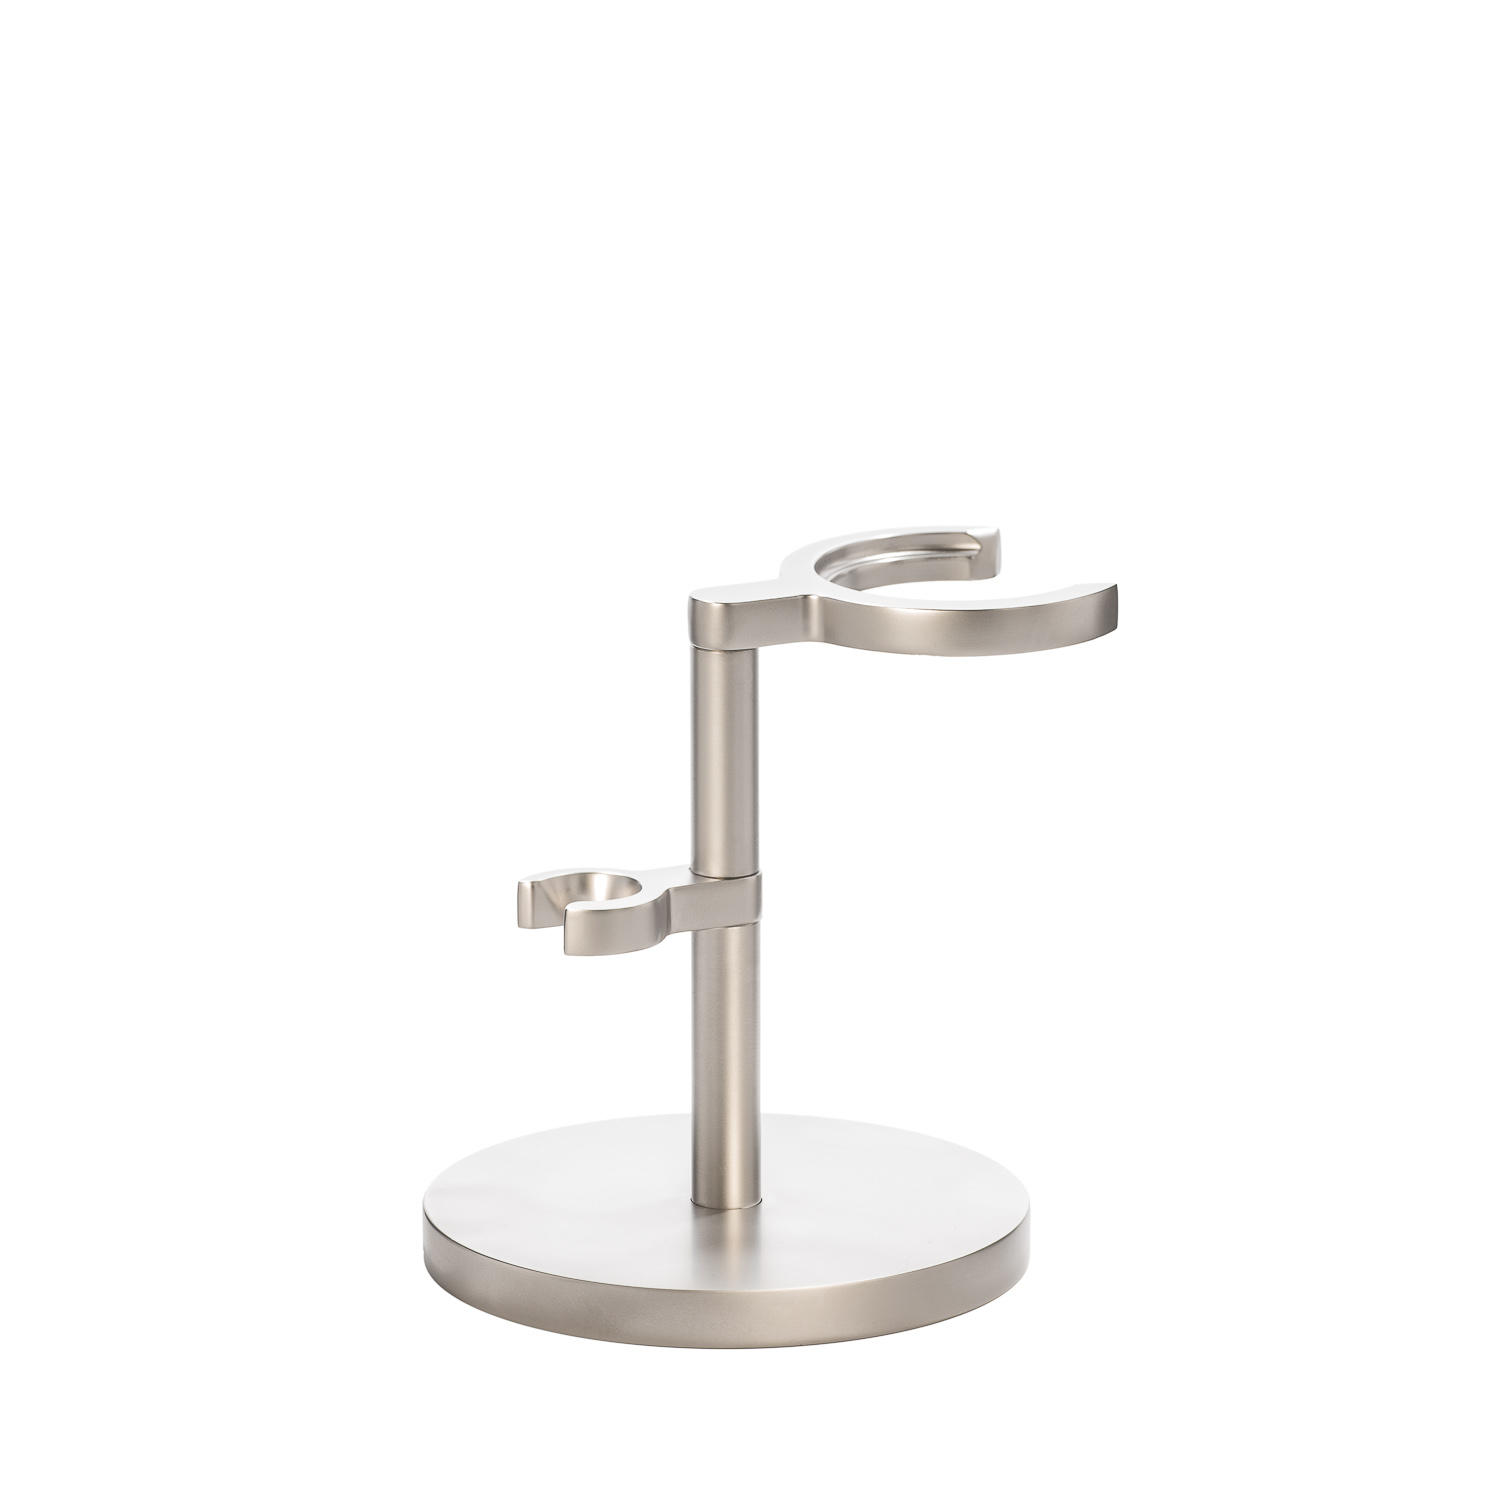 MUHLE ROCCA Matt Stainless Steel Shaving Set Stand for ROCCA Series - RHMROCCA